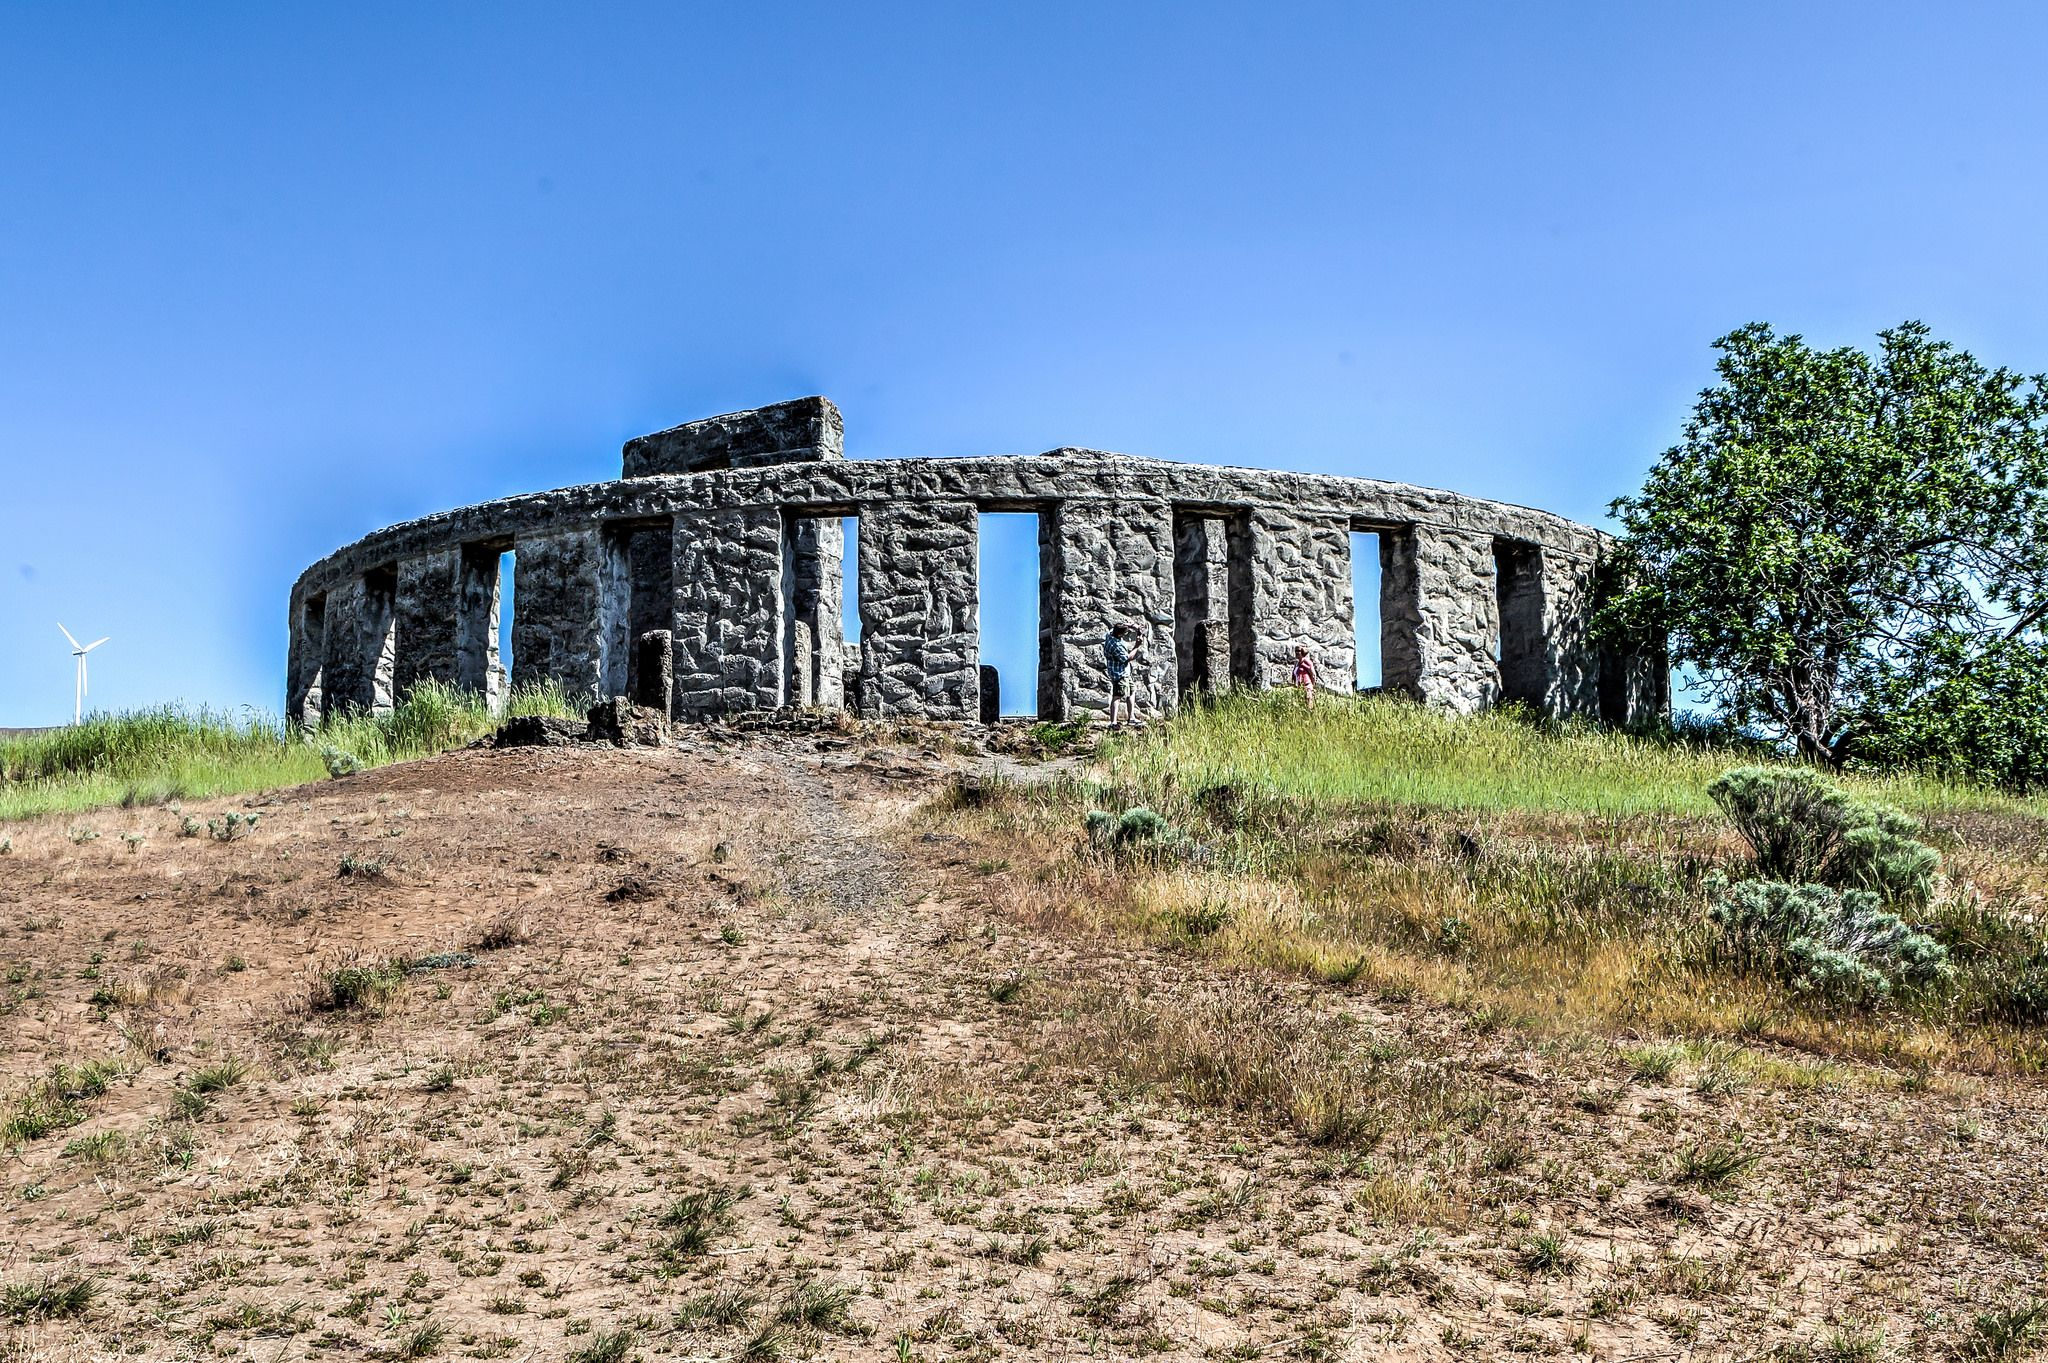 The Maryhill Stonehenge Replica